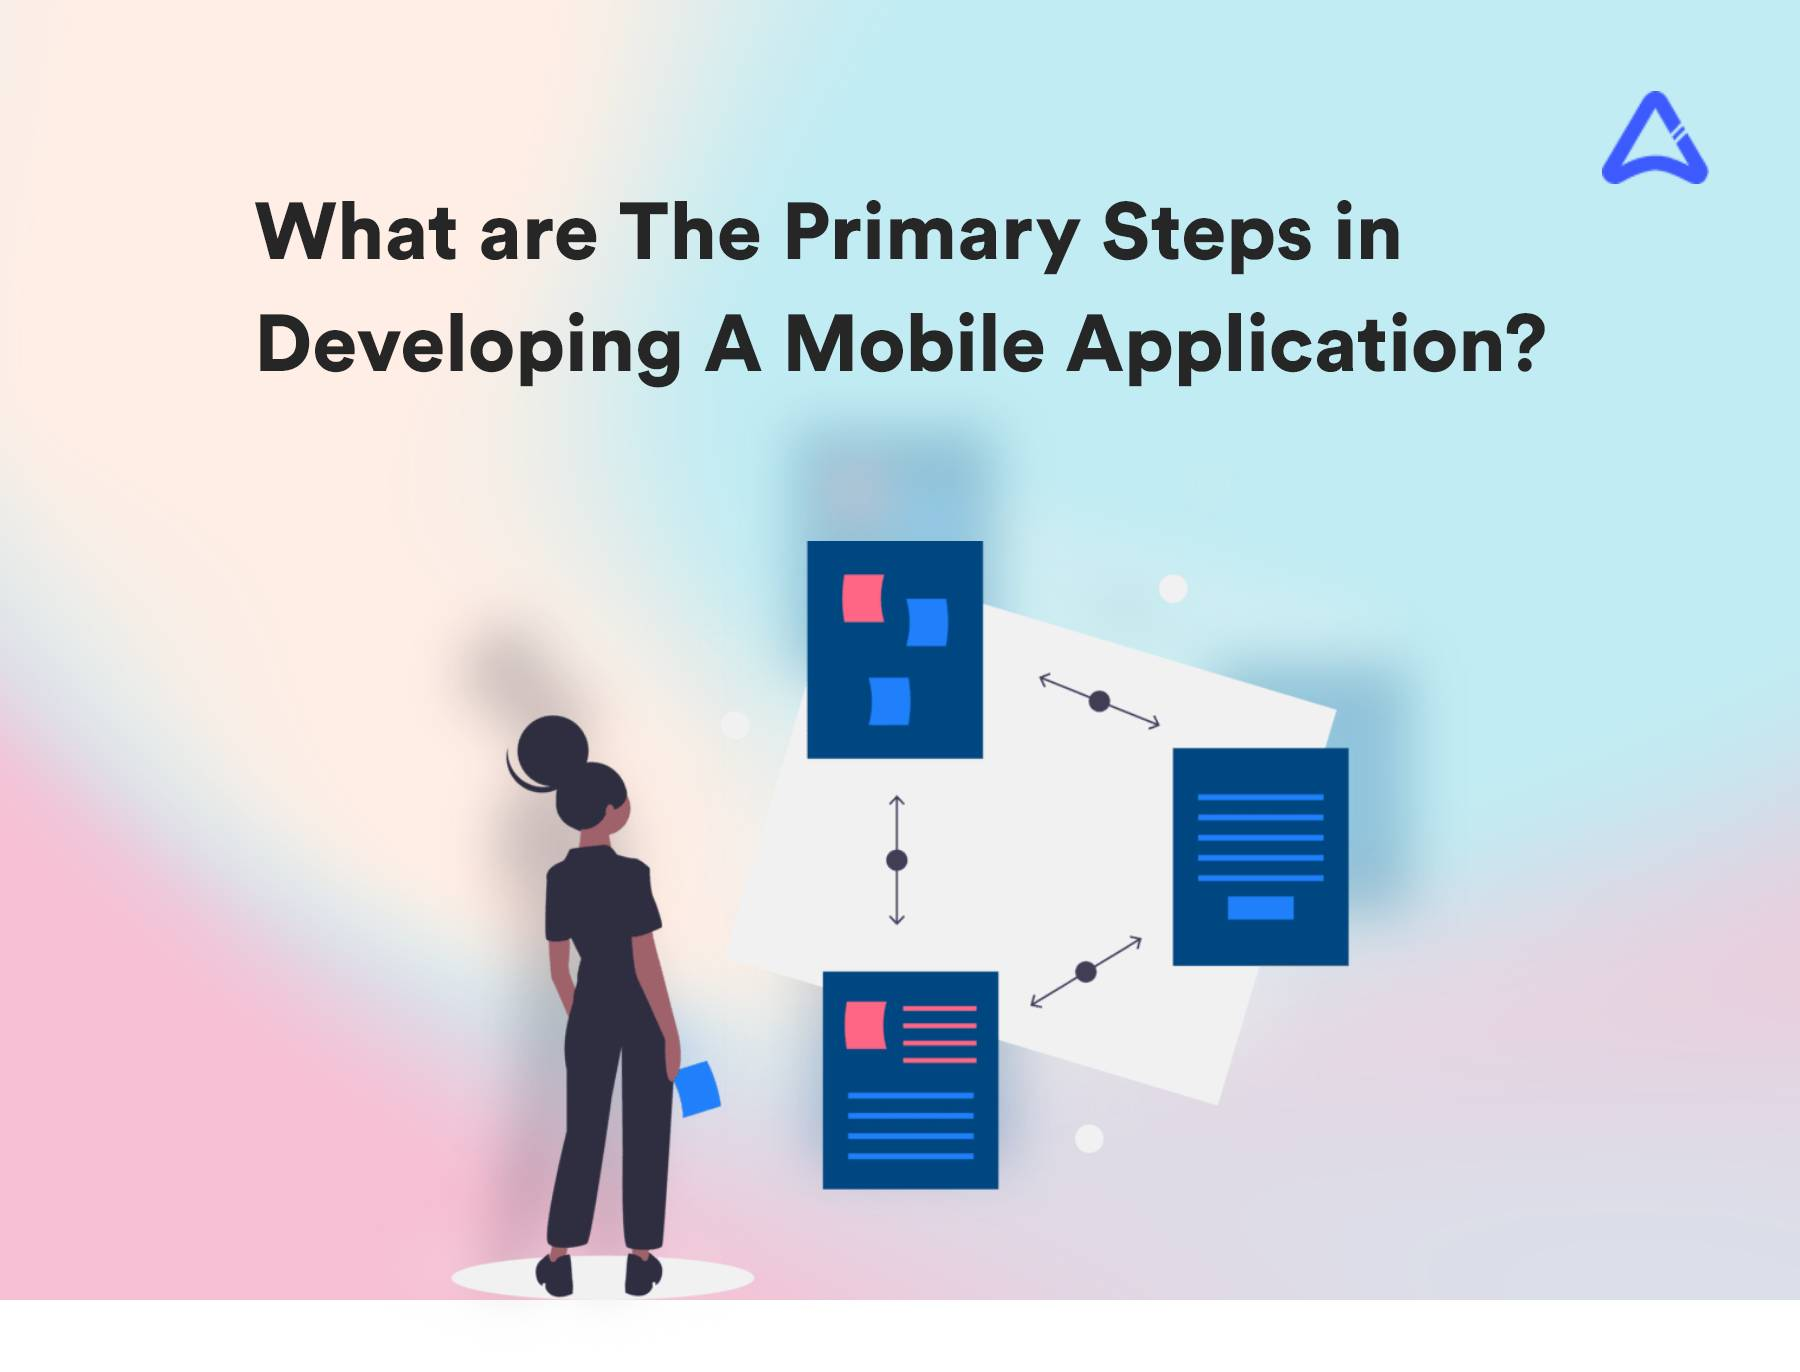 Main Steps In Developing A Mobile Application